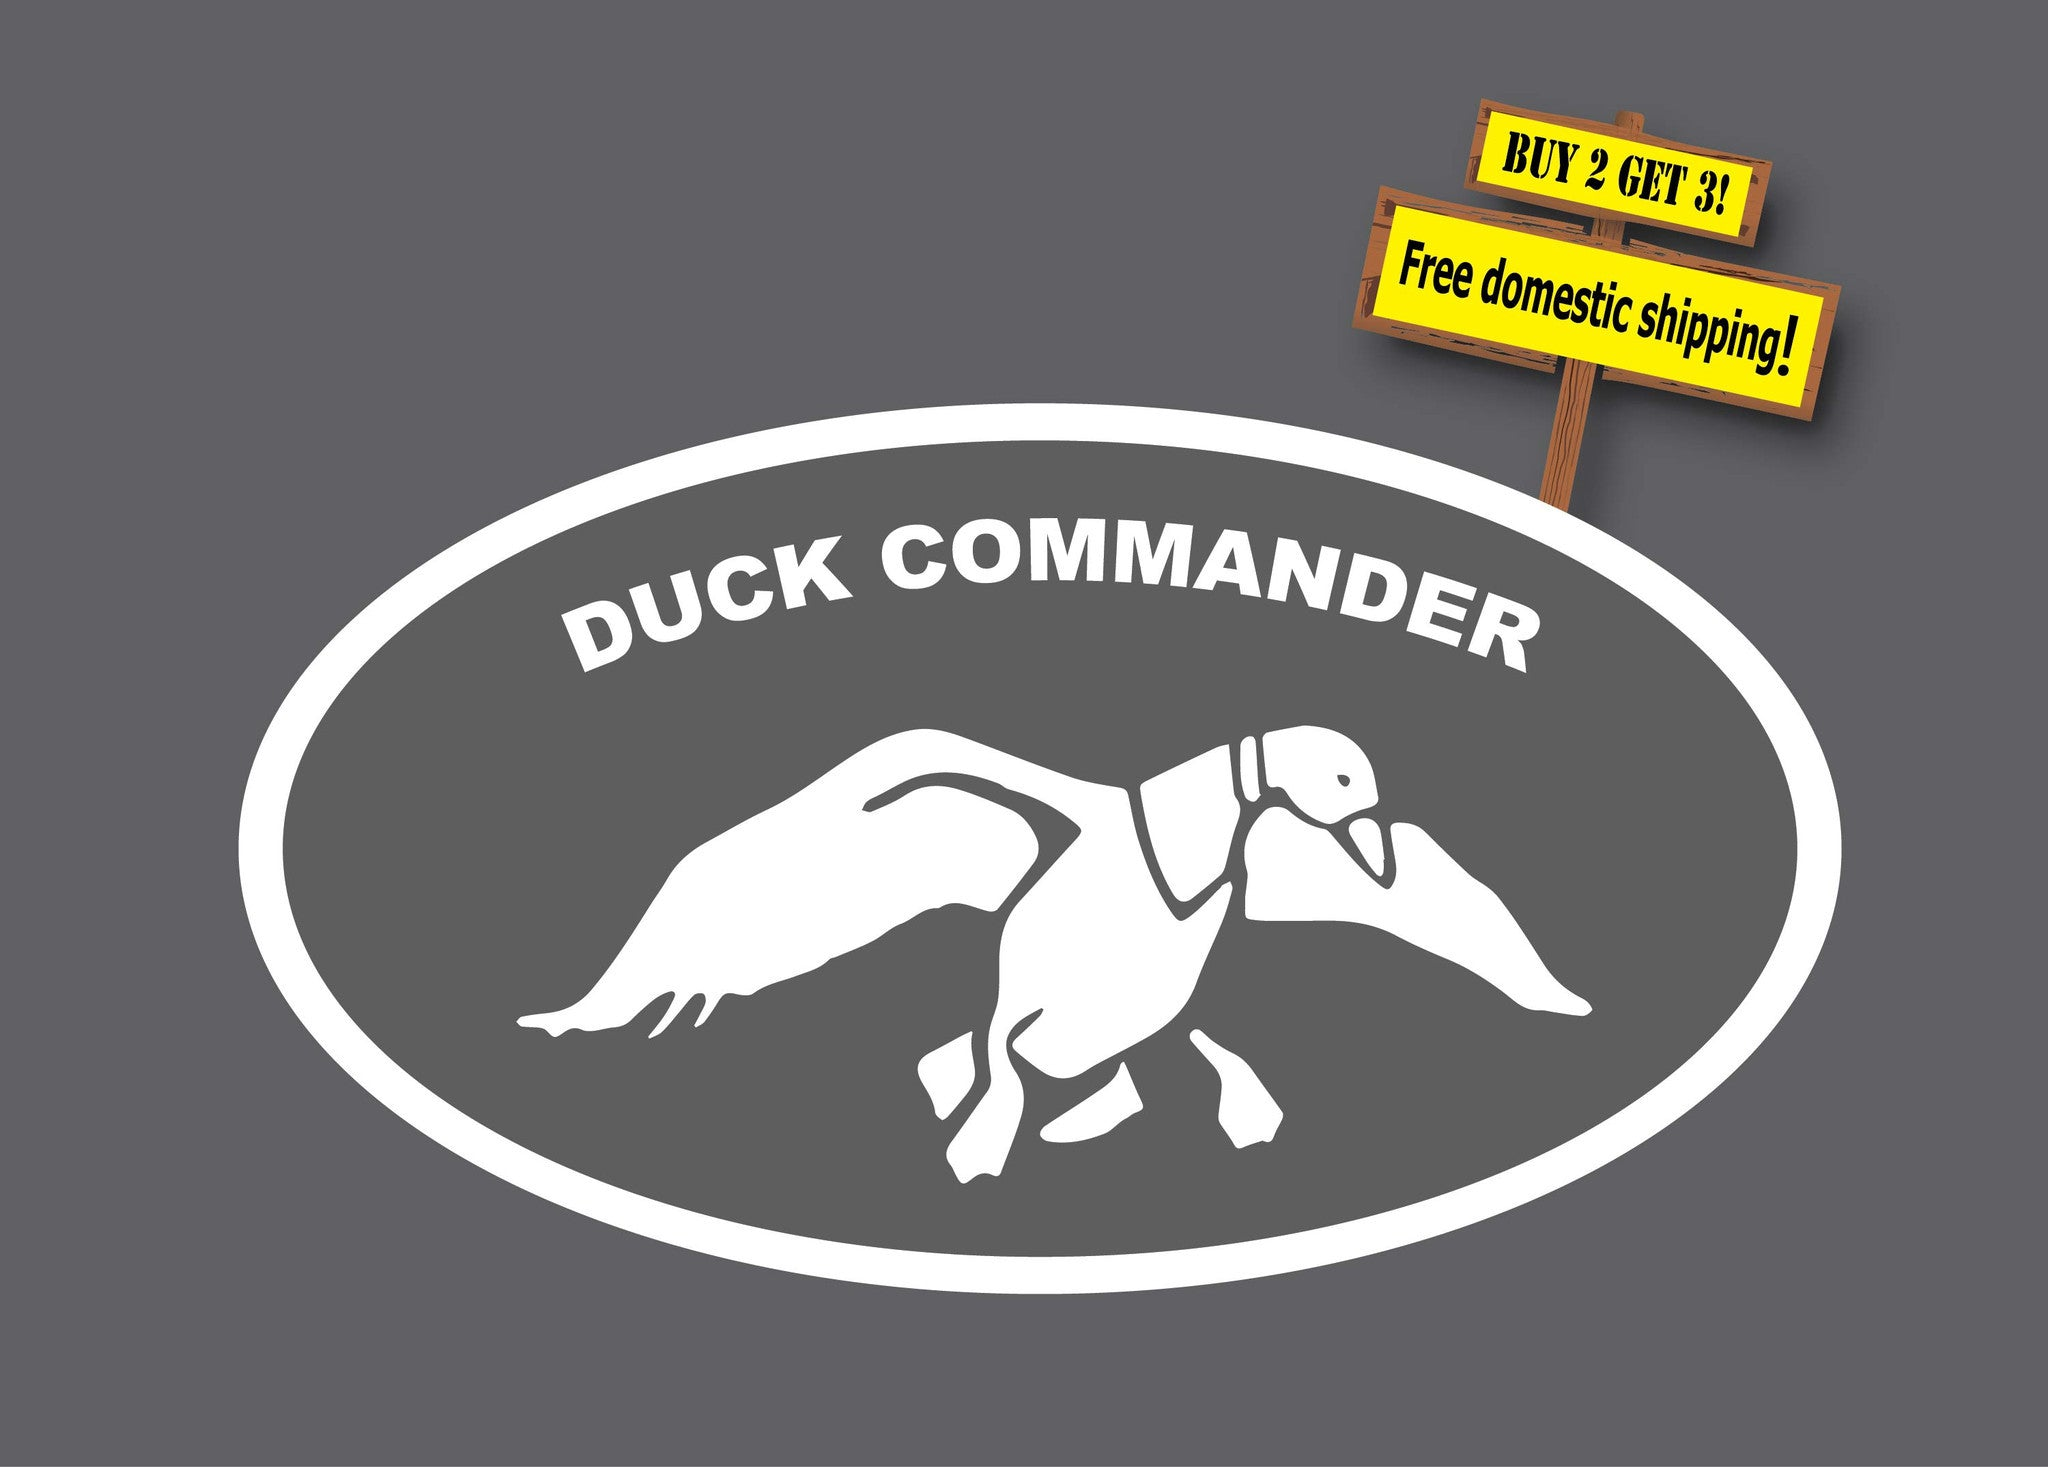 Banksy panda with guns sticker truck stickers logos and vinyl - Duck Commander Duck Dynasty No Gun Control Browning Hunting Lake 7 By 3 5 Decal Sticker Buy 2 Get 3 Free Shipping Choose Any Color